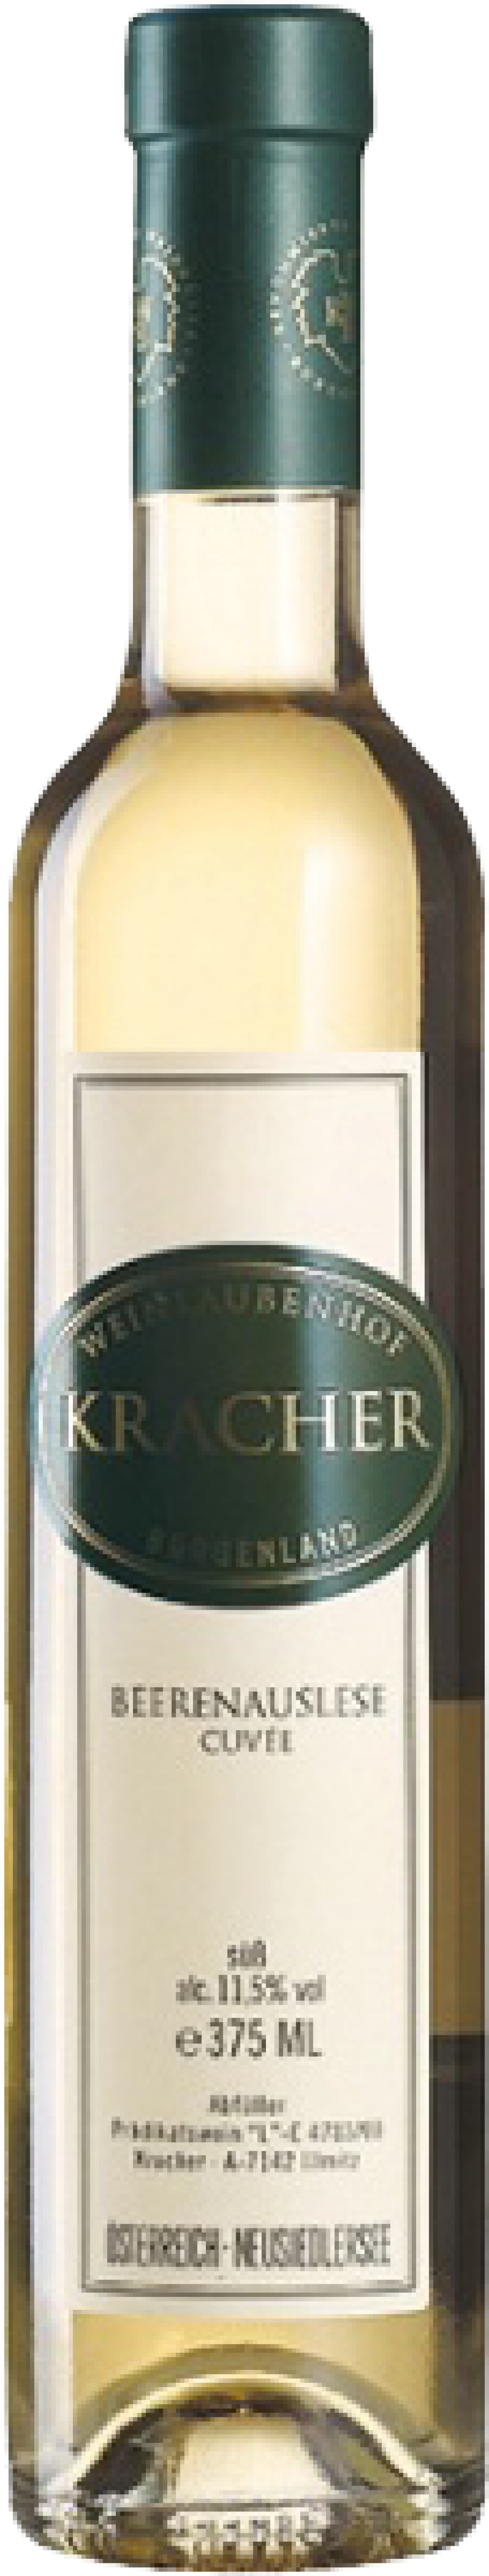 files/images/wines/Austria/kracher-neusiedlersee-burgenland/ONKCB2011_pic_big.png